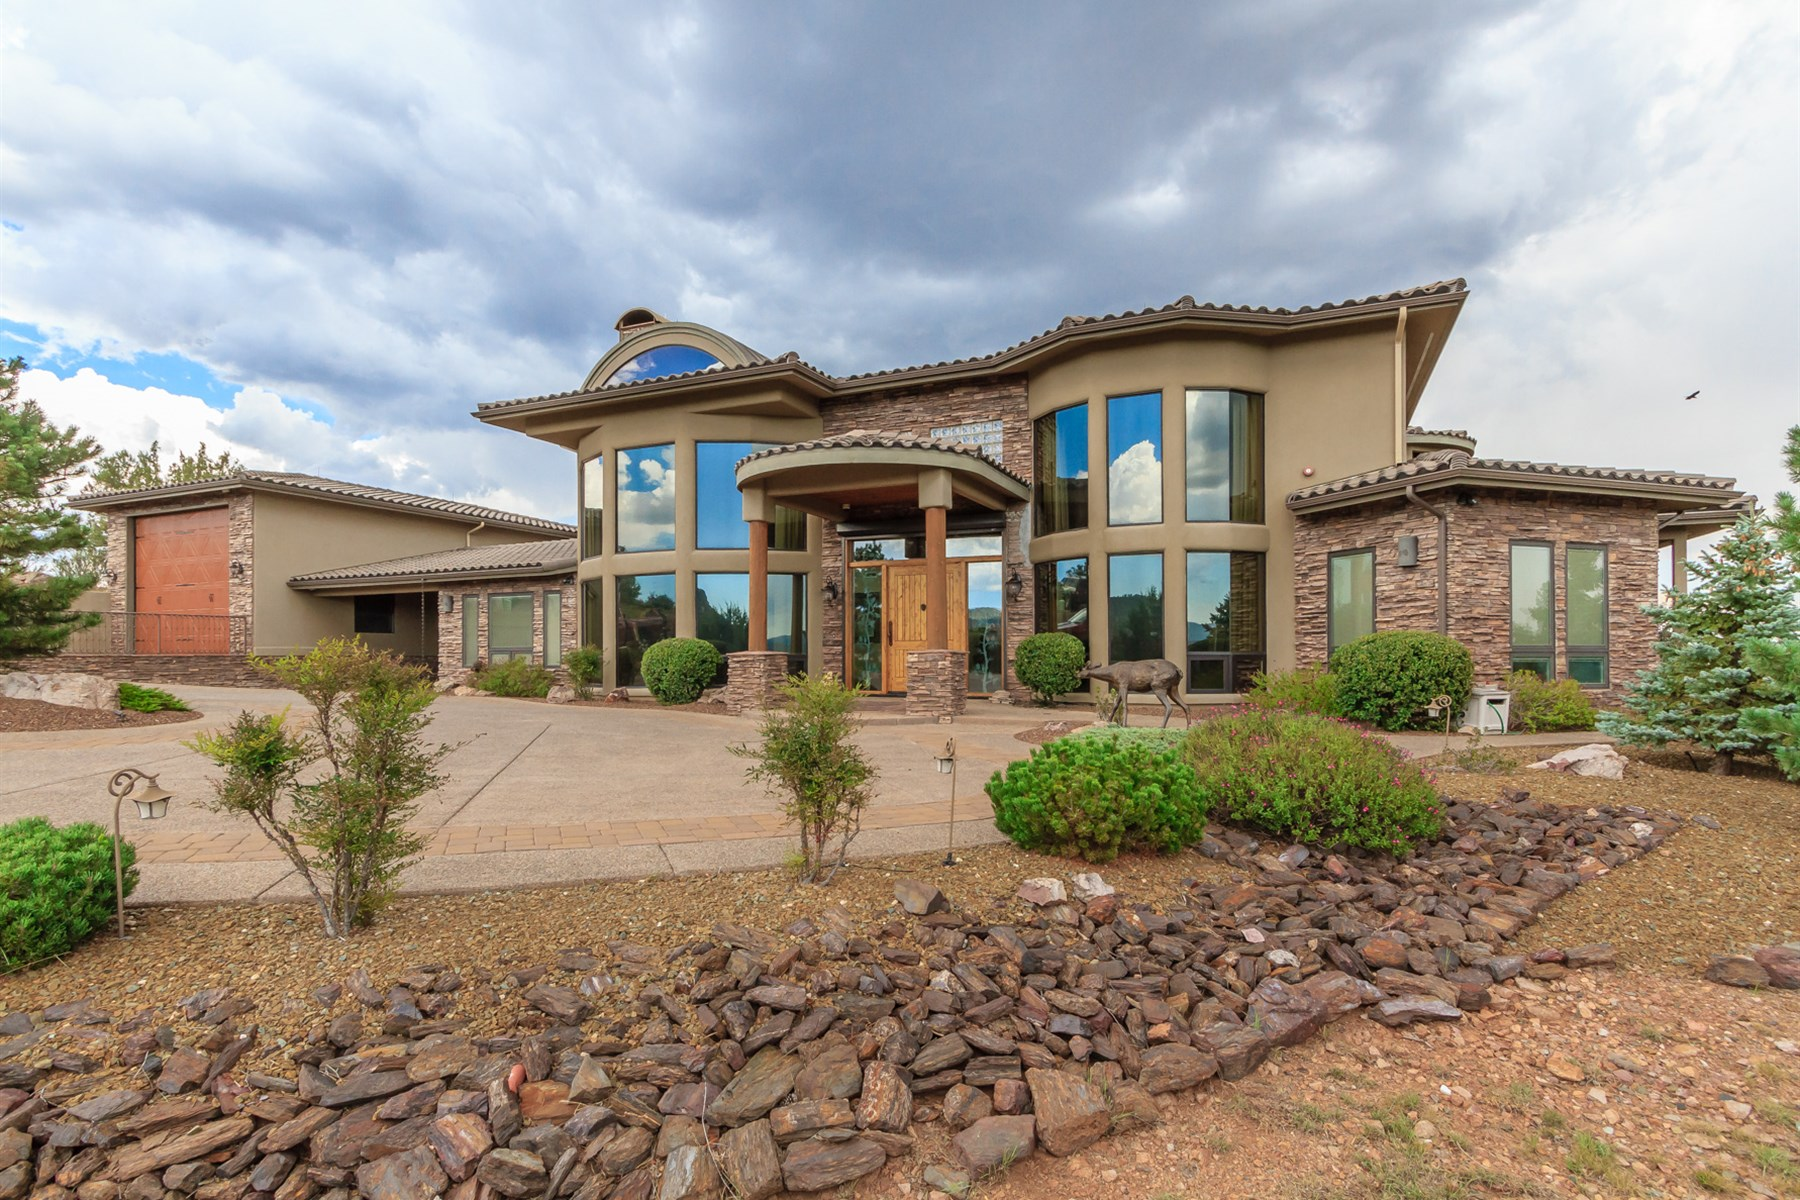 Single Family Home for Sale at Magnificant custom home near the highest point in forest trails 2004 PROMONTORY Prescott, Arizona, 86305 United States